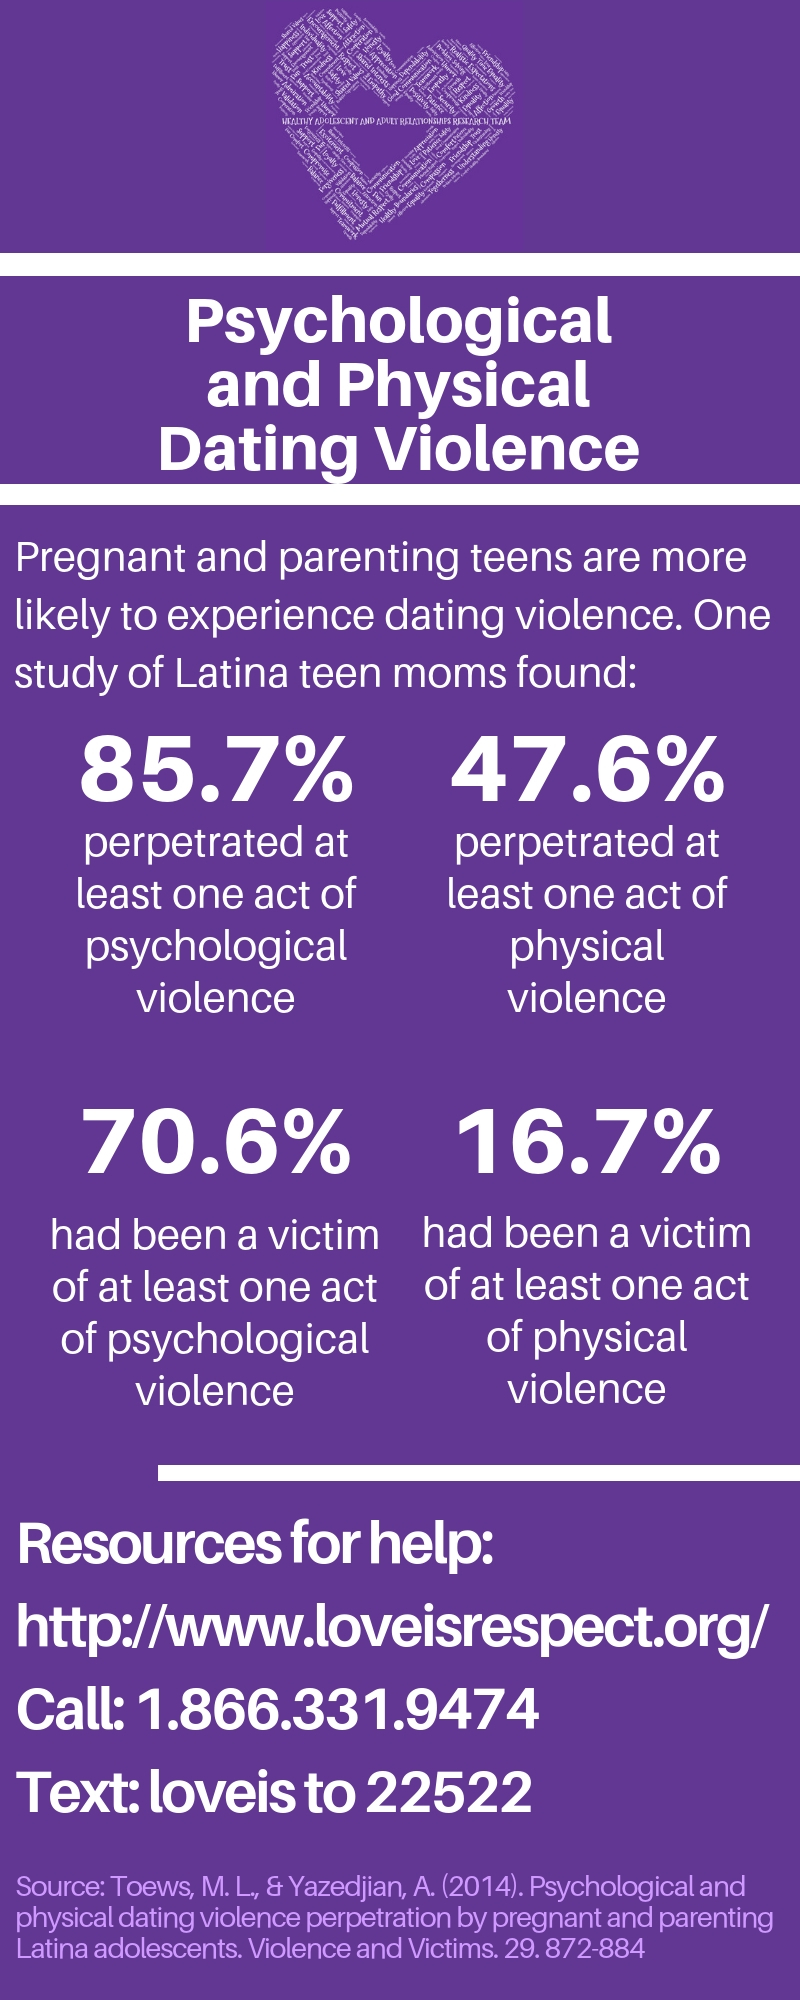 Infographic Describing Psychological and Physical Dating Violence